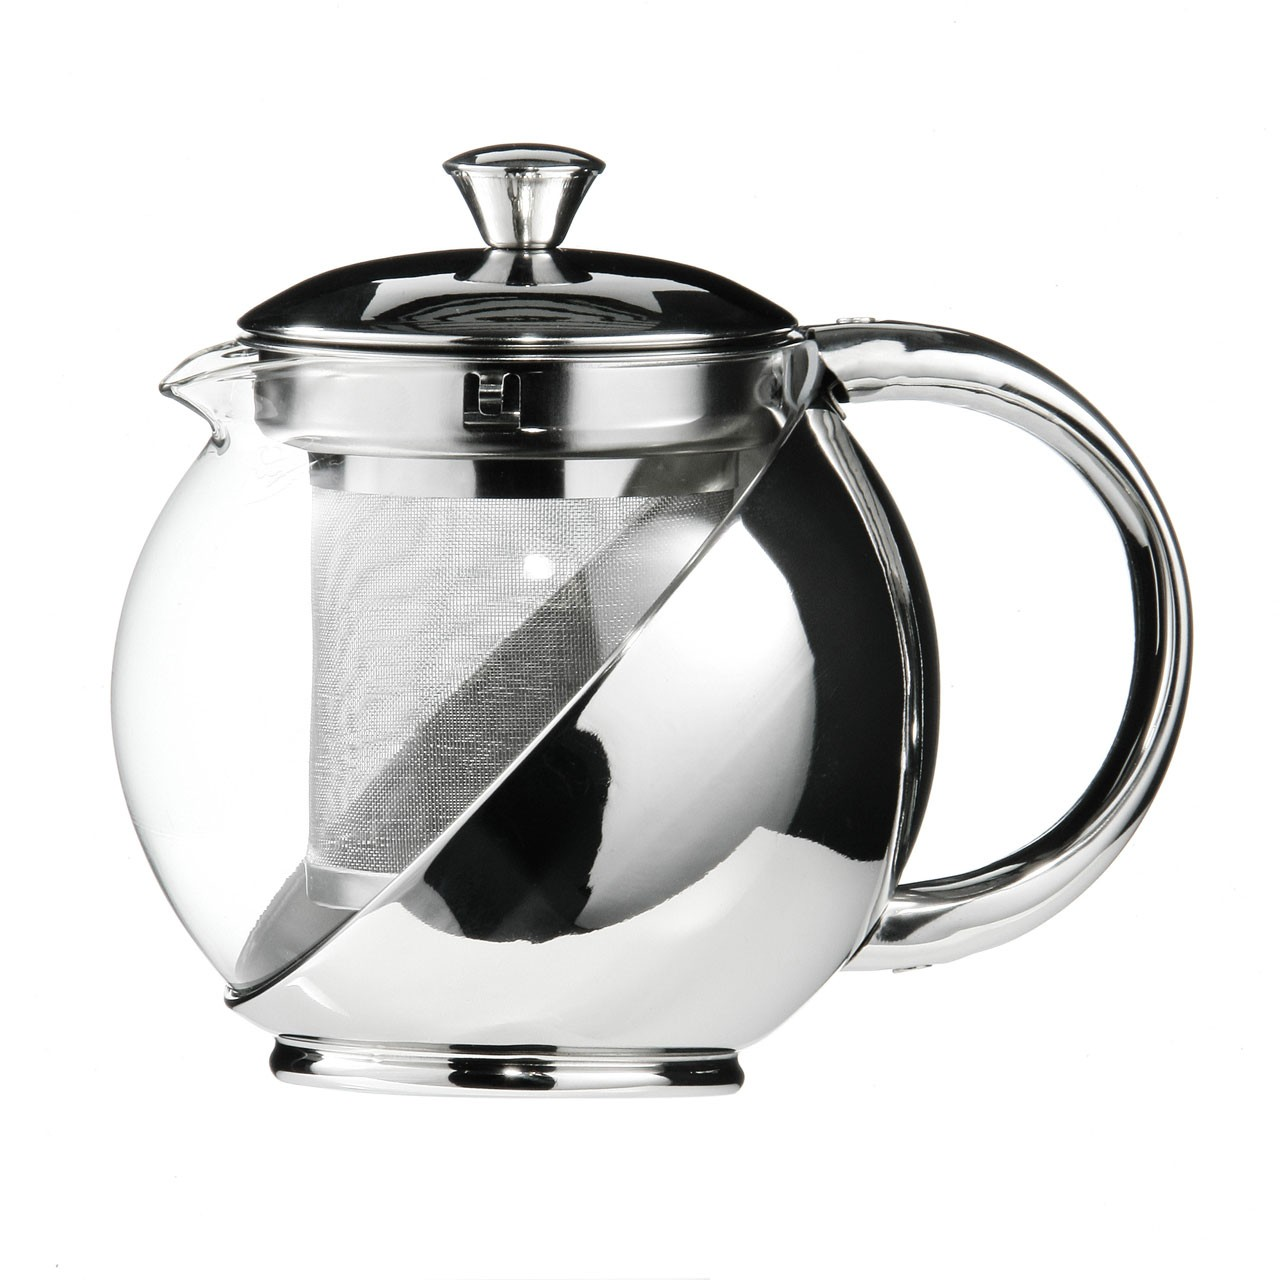 Teapot with Infuser - 700 ml - Stainless Steel